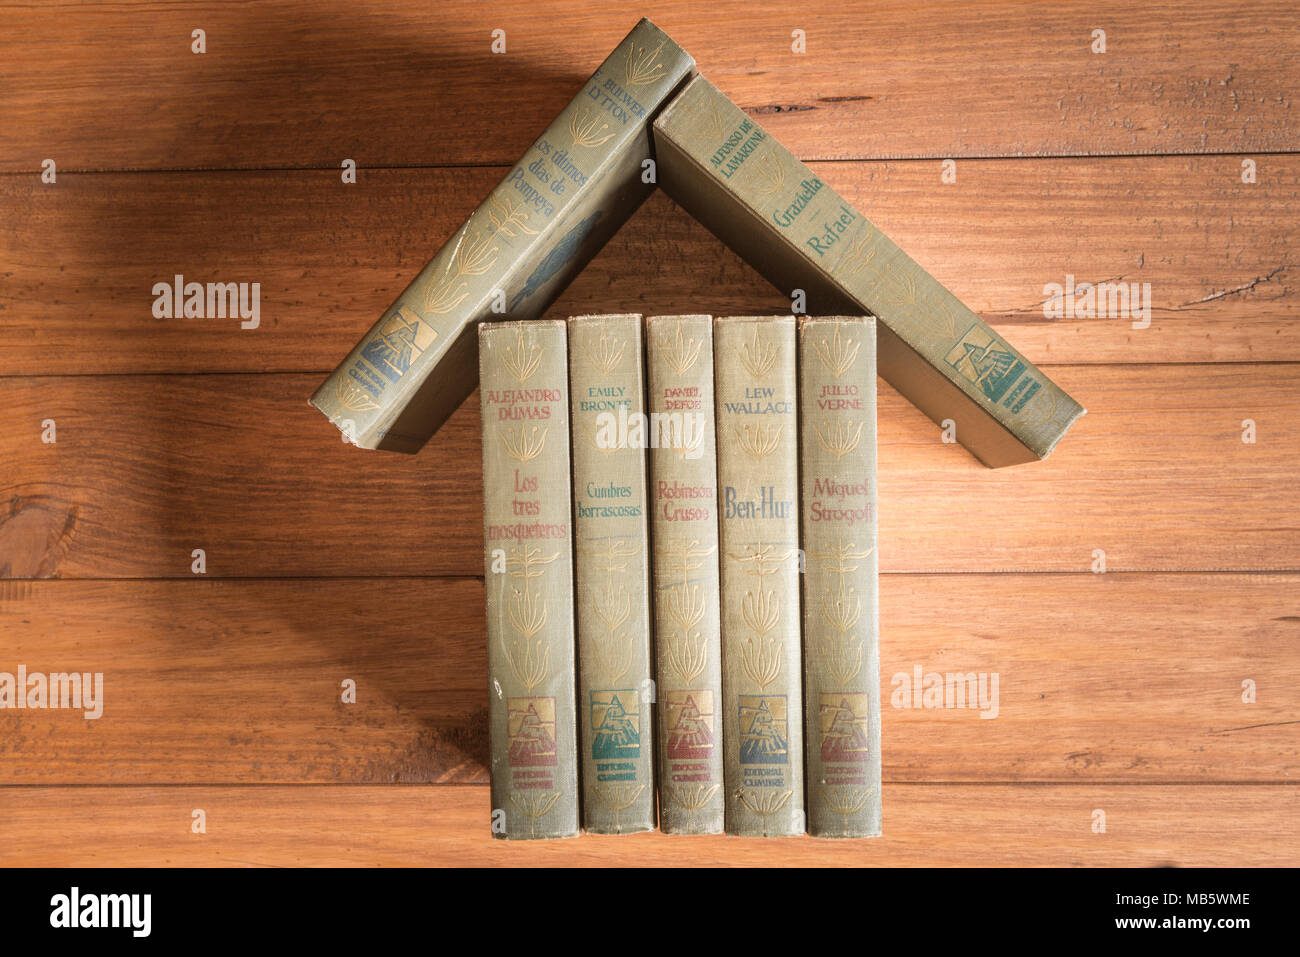 Stack of old books forming the figure of a house on some wooden boards. - Stock Image